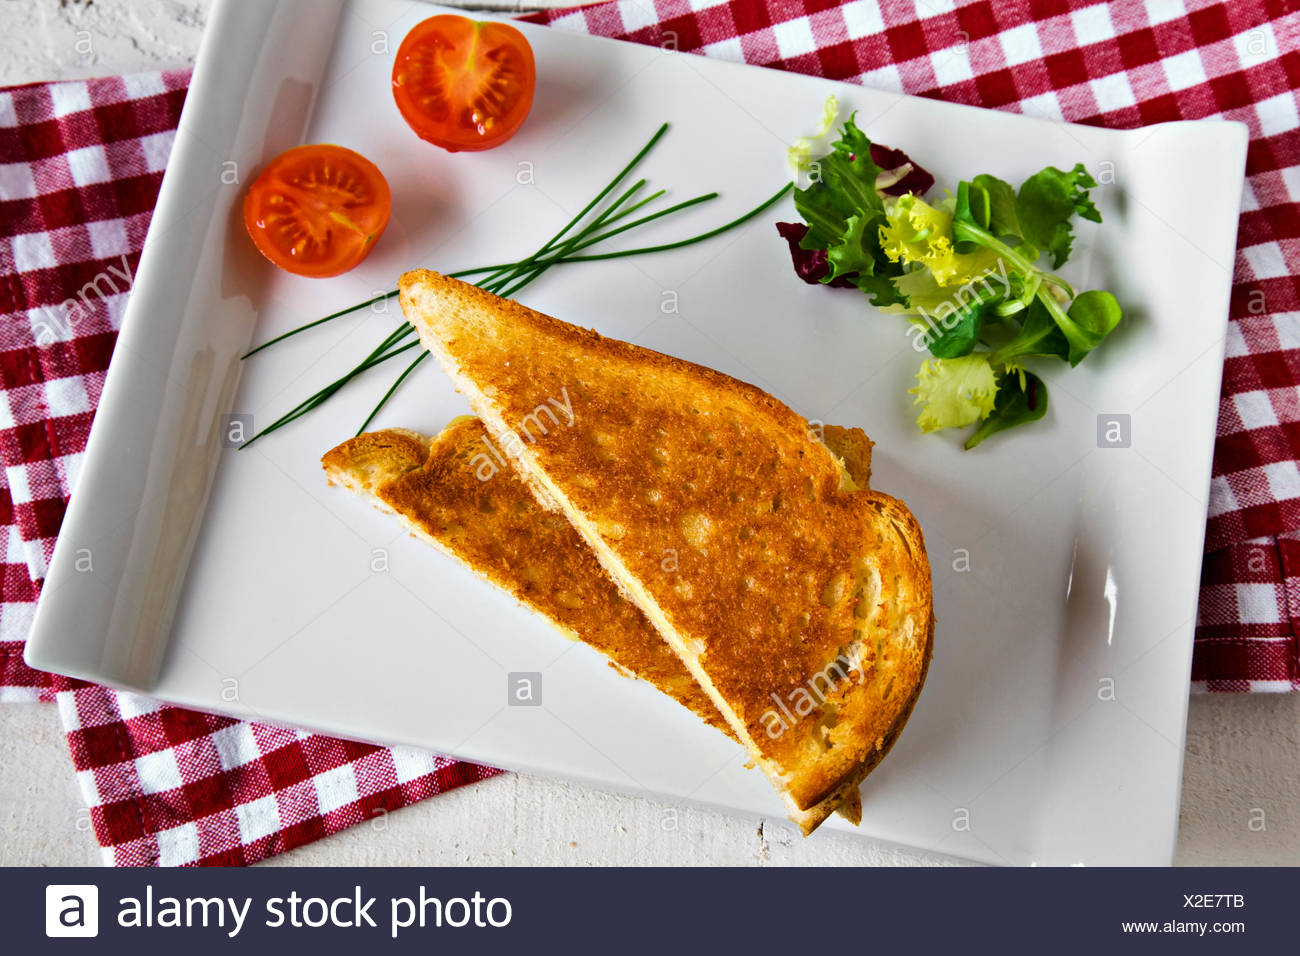 Toasted cheese sandwich - Stock Image